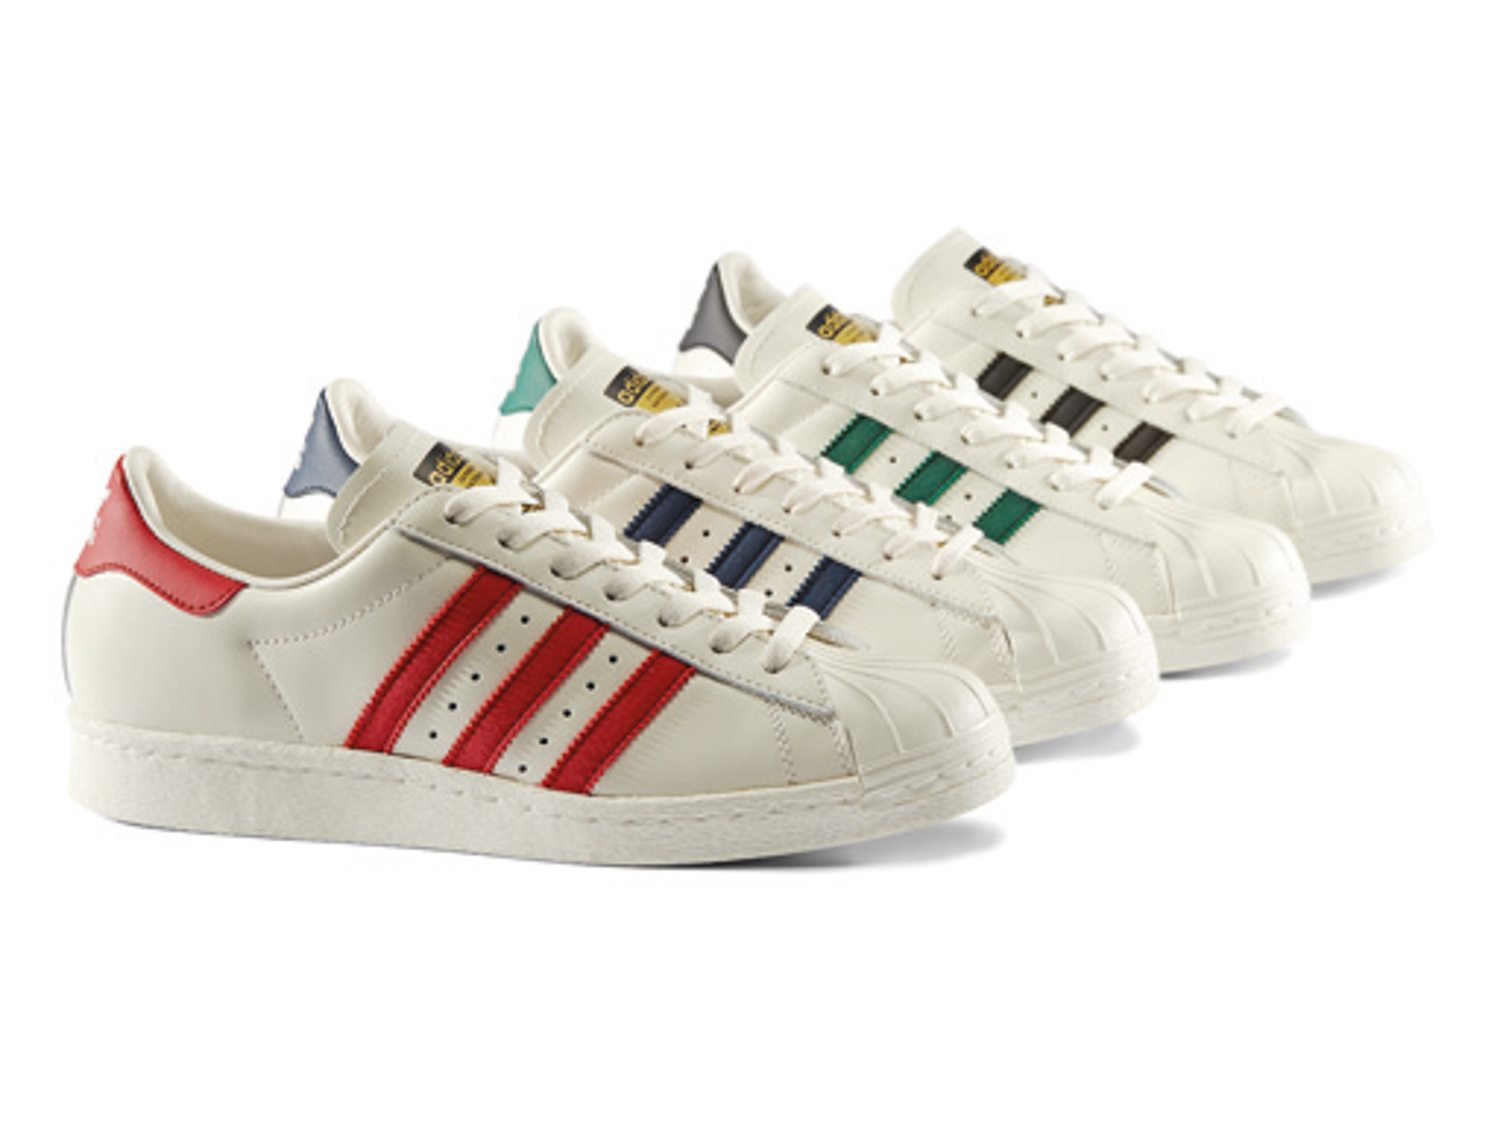 adidas Originals Superstar Vintage Deluxe Pack 5